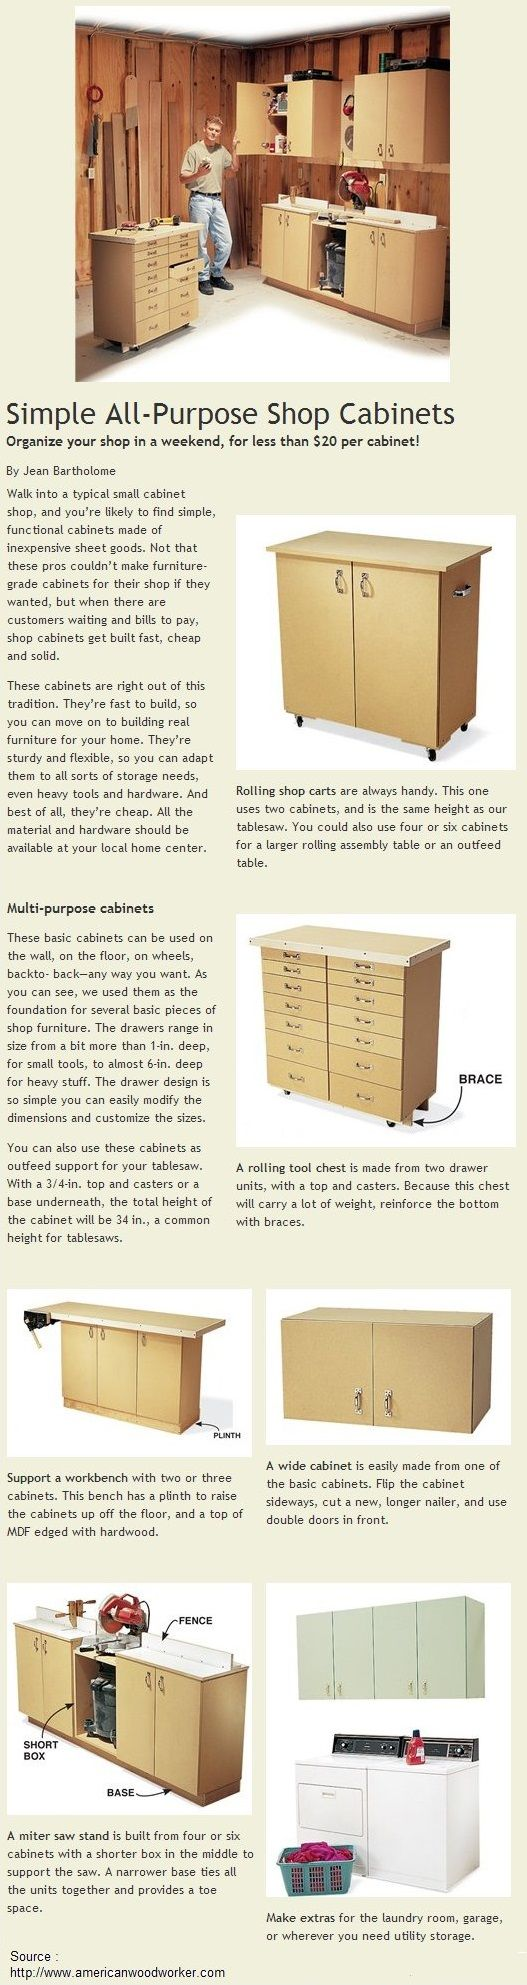 All Purpose Cabinets : Simple all purpose shop cabinets storage pinterest